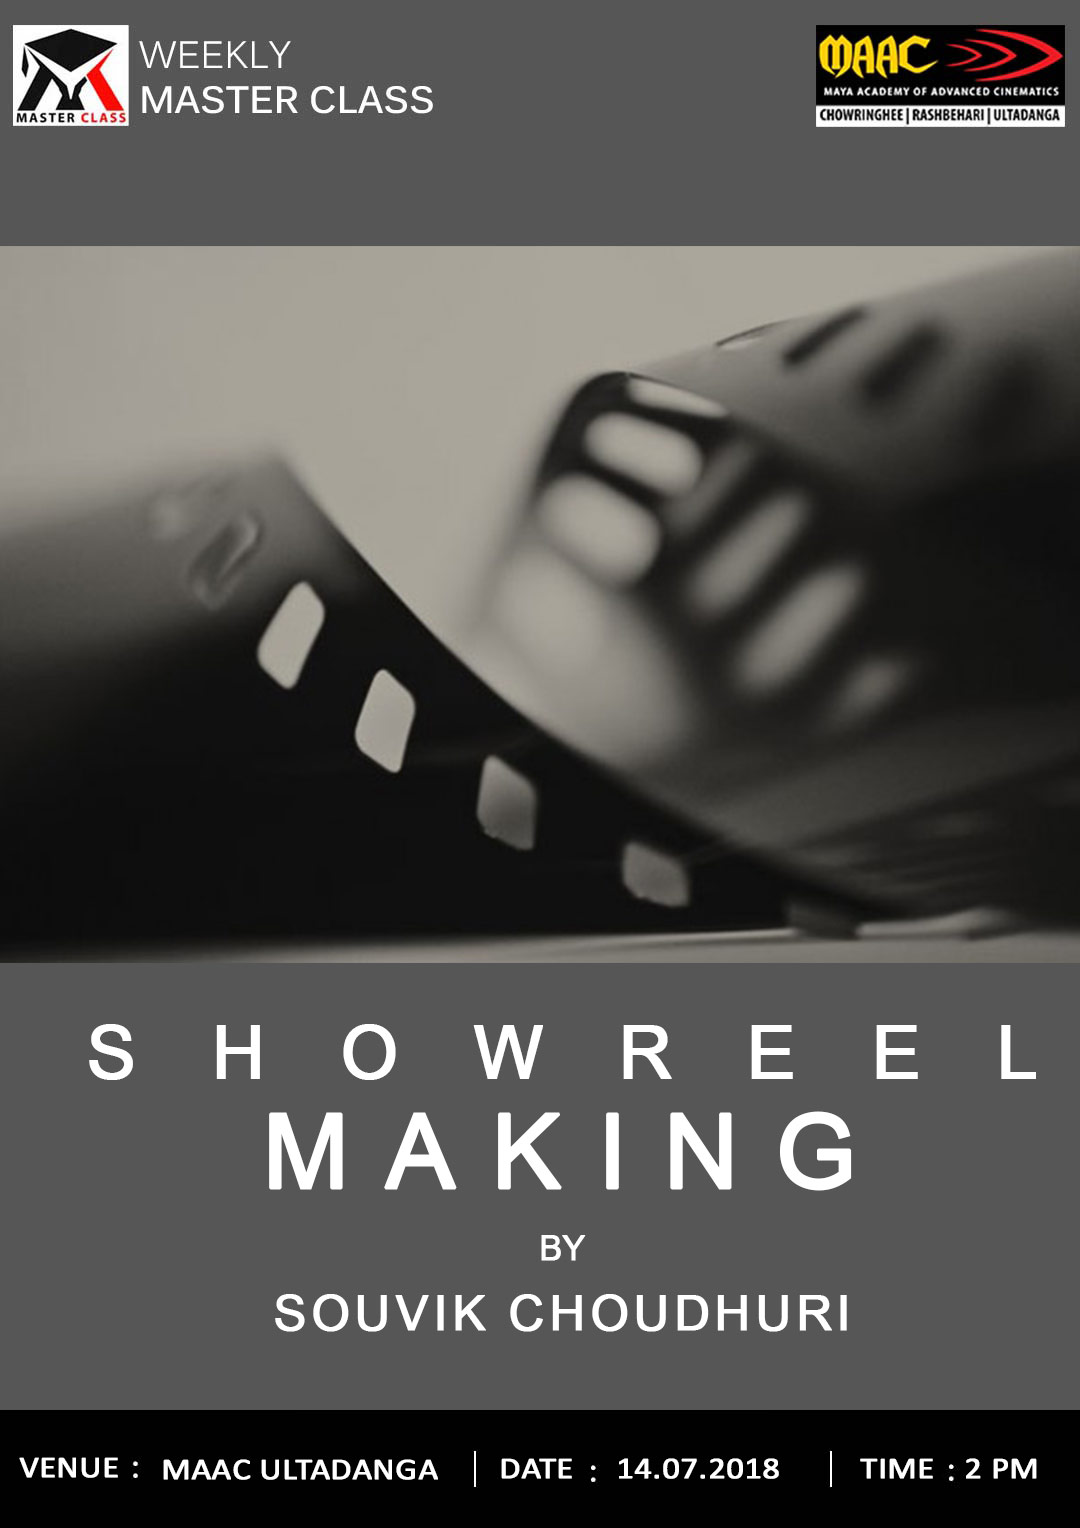 Weekly Master Class on Showreel Making